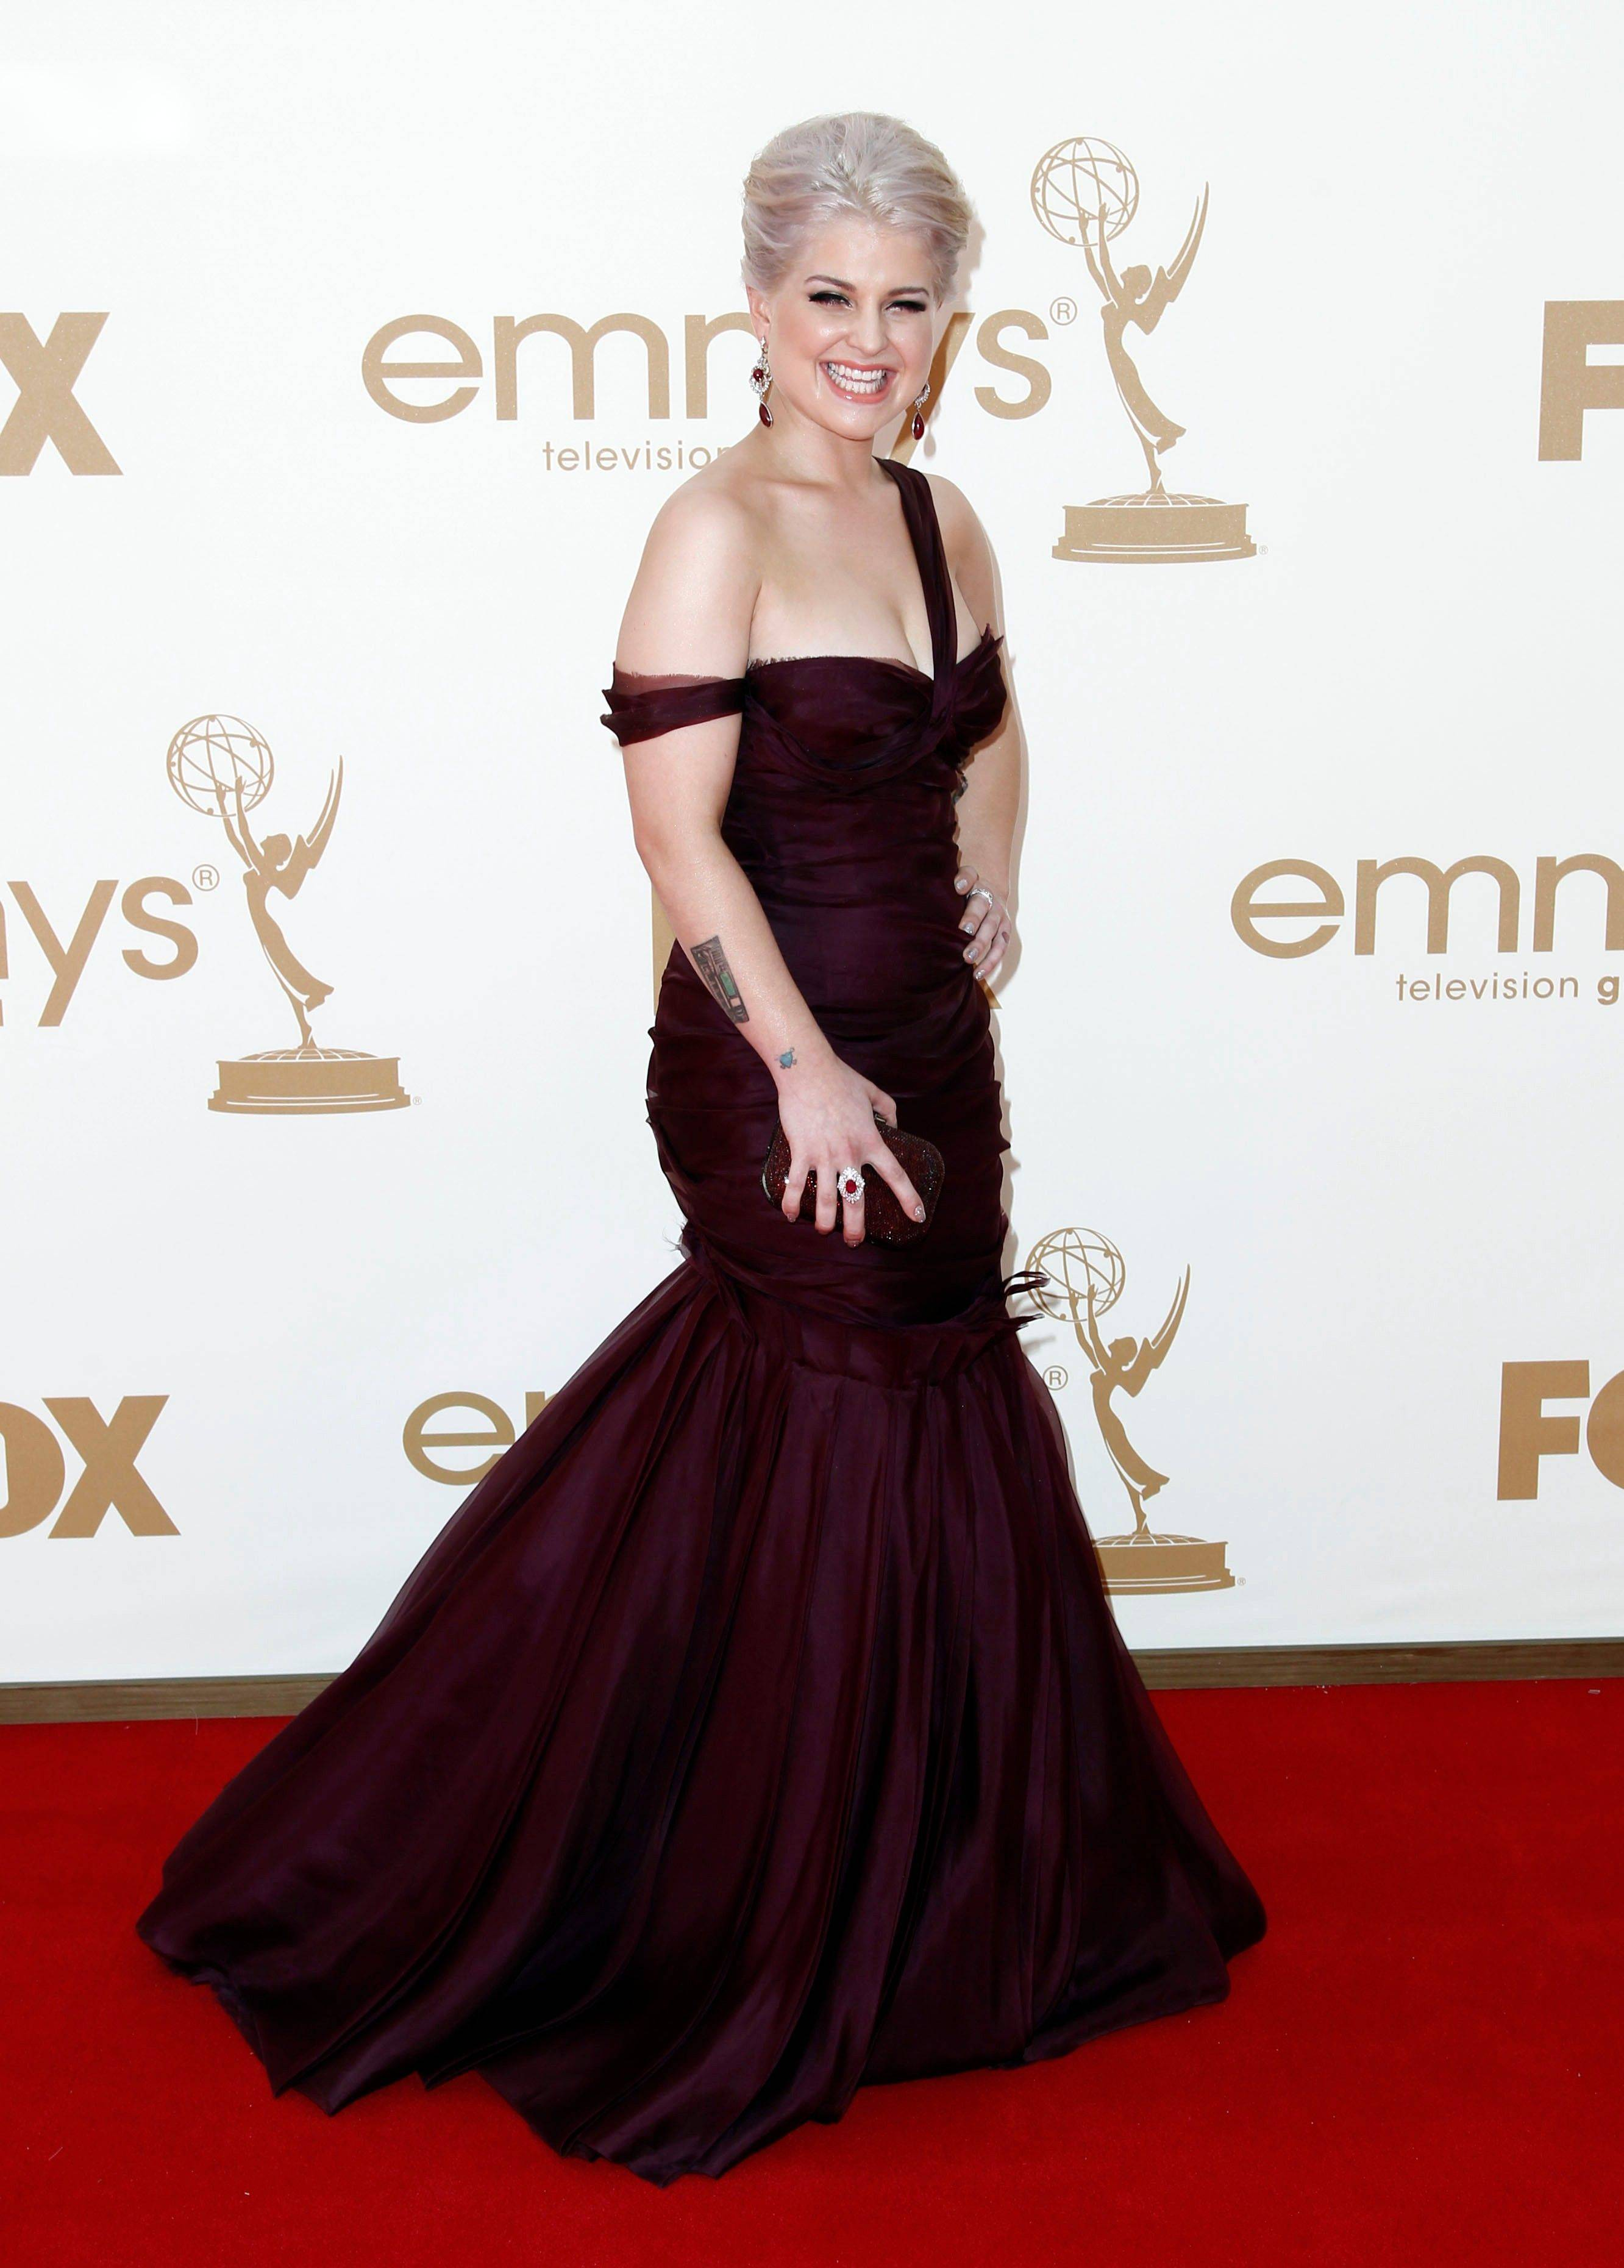 Reality TV star Kelly Osbourne shows off a more sophisticated side in this dashing purple gown.